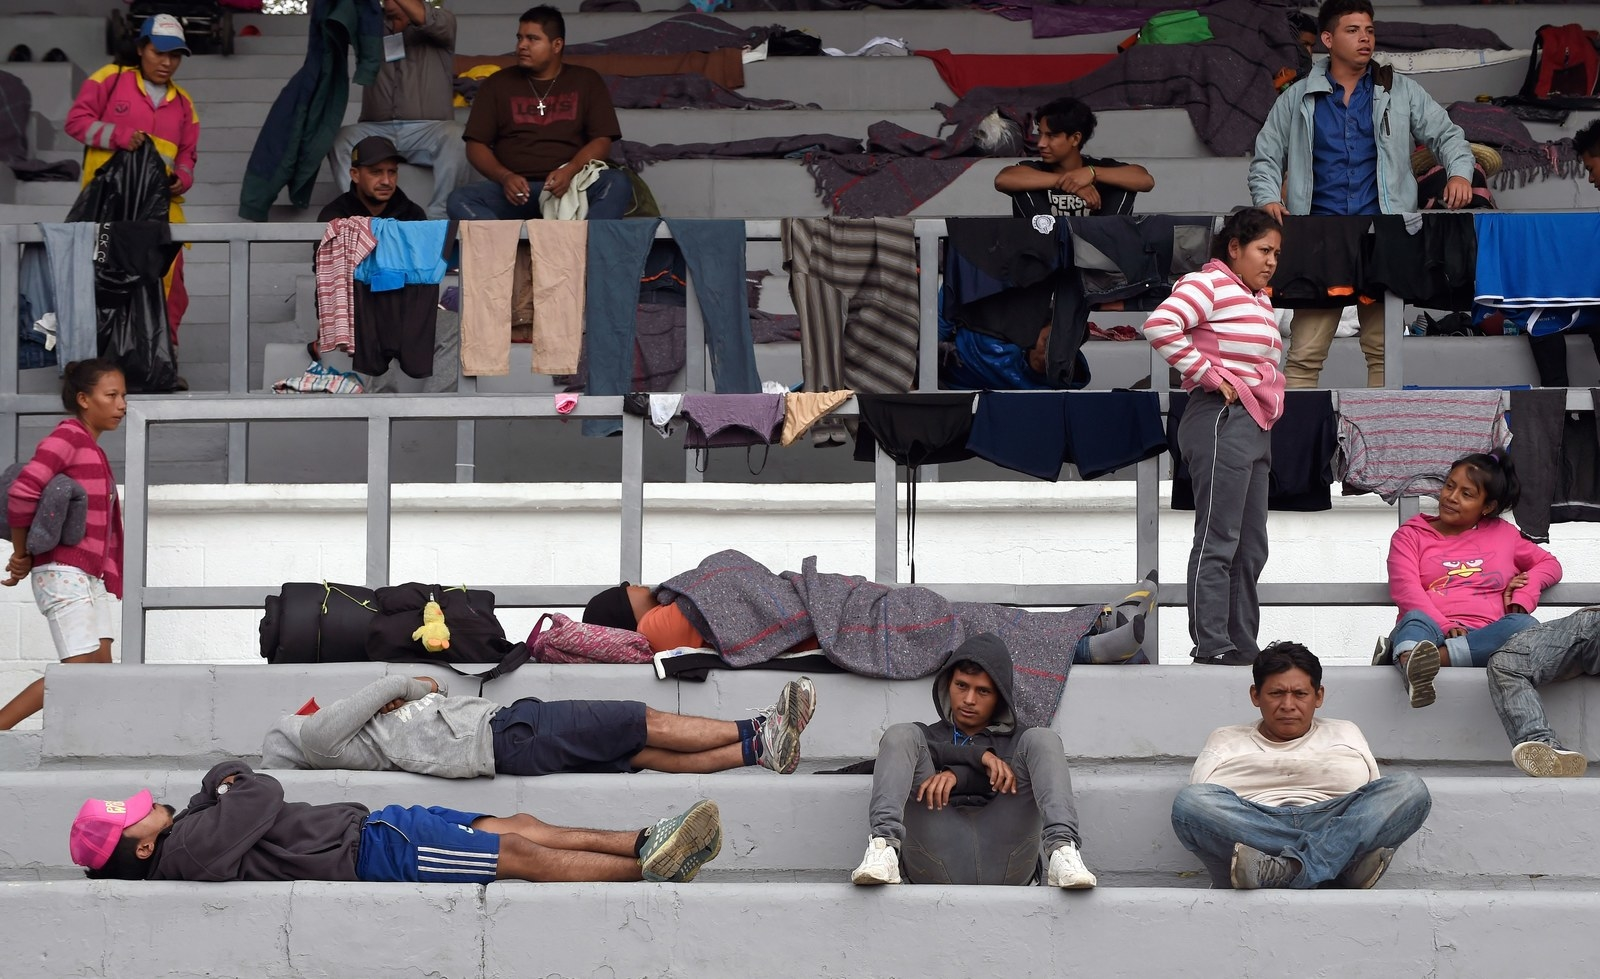 Migrants at a sports complex in Mexico City.